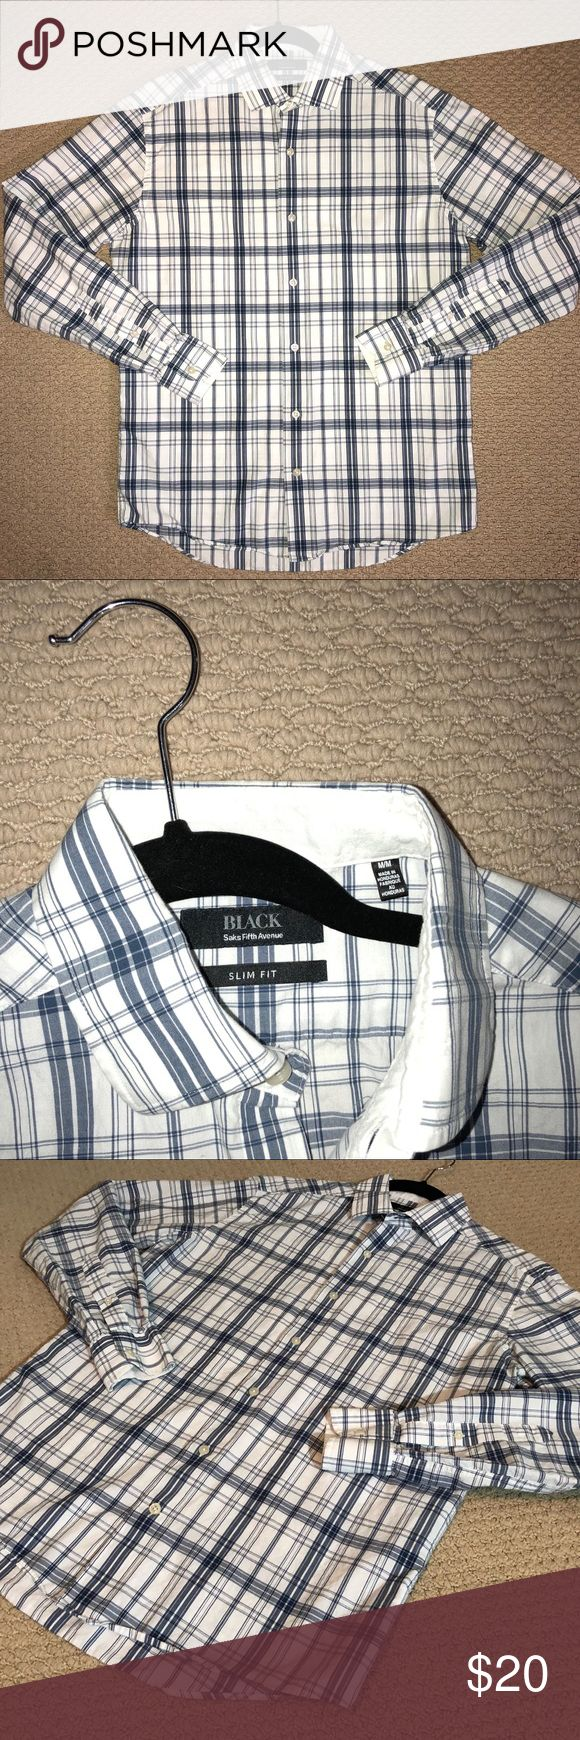 SALE EUC Saks Fifth Avenue Black Label Dress Shirt This dress shirt from Saks Fifth Avenue Black Label is in great shape! It features a white and blue plaid design. Slim Fit. Size Medium Saks Fifth Avenue Black Label Shirts Casual Button Down Shirts